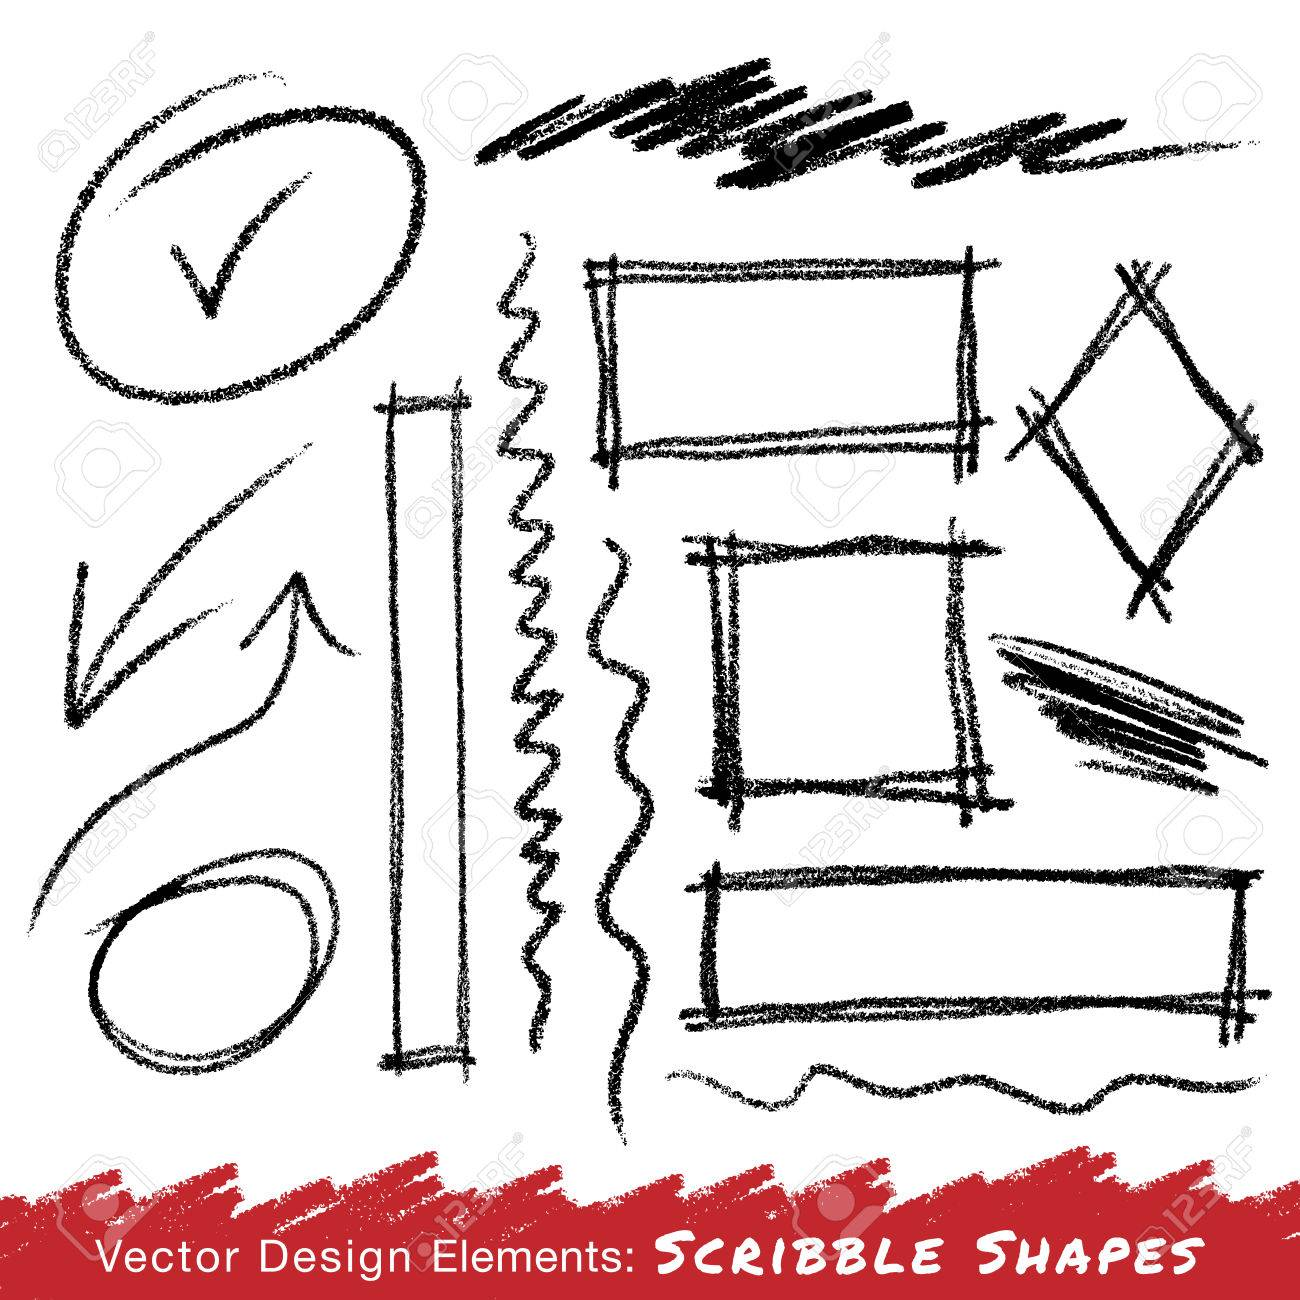 Scribble Stains Hand drawn in pencil - 31995718